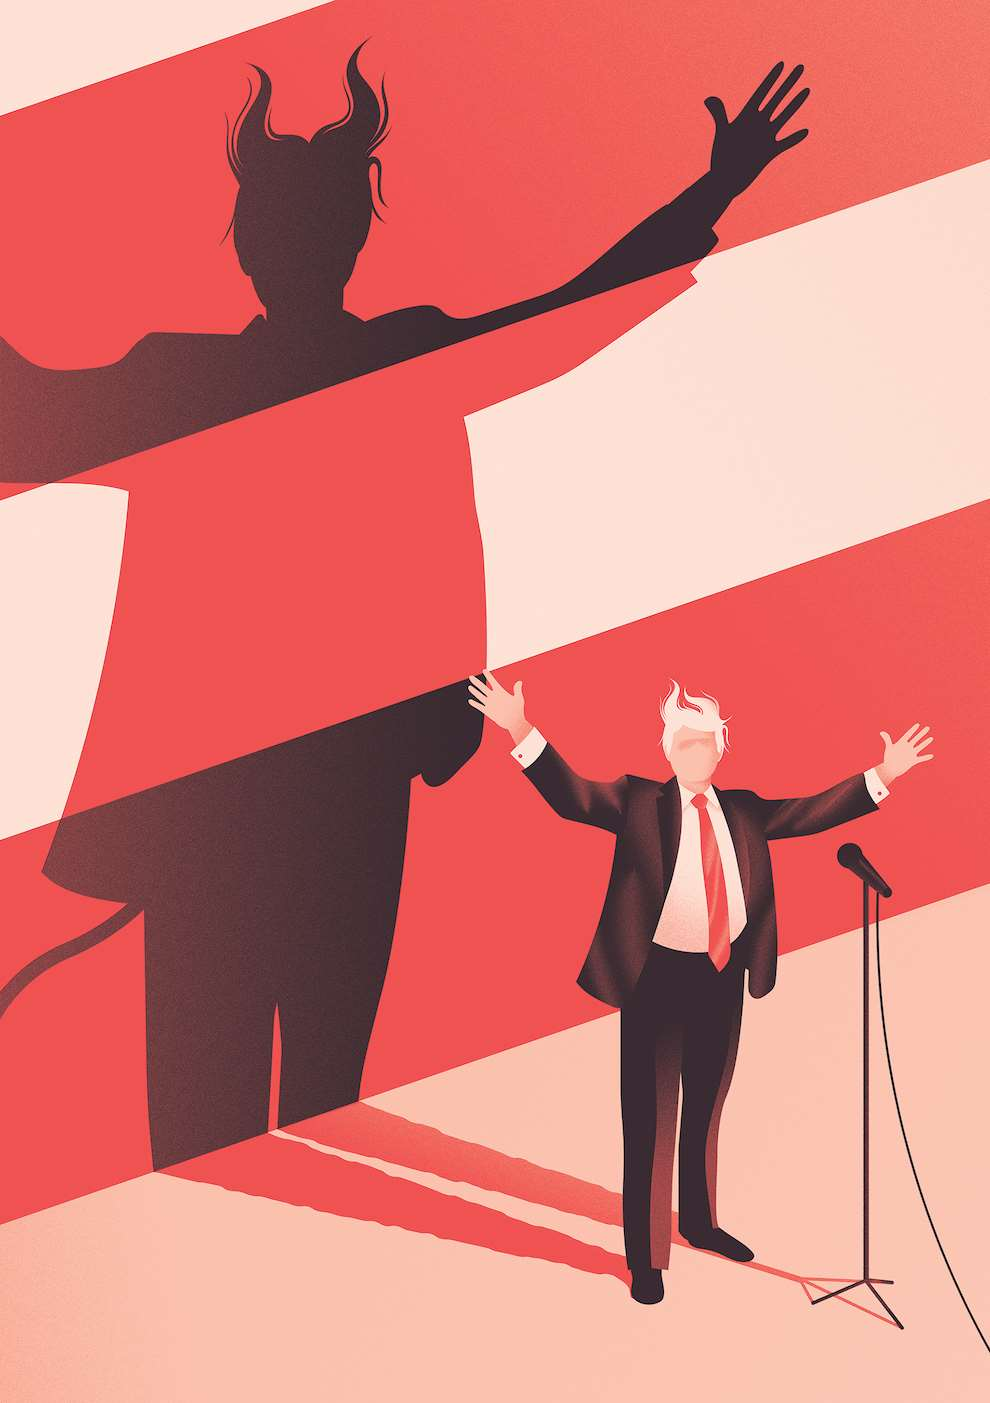 Jack Daly, Digital illustration of Trump, with shadow portraying him as the devil.